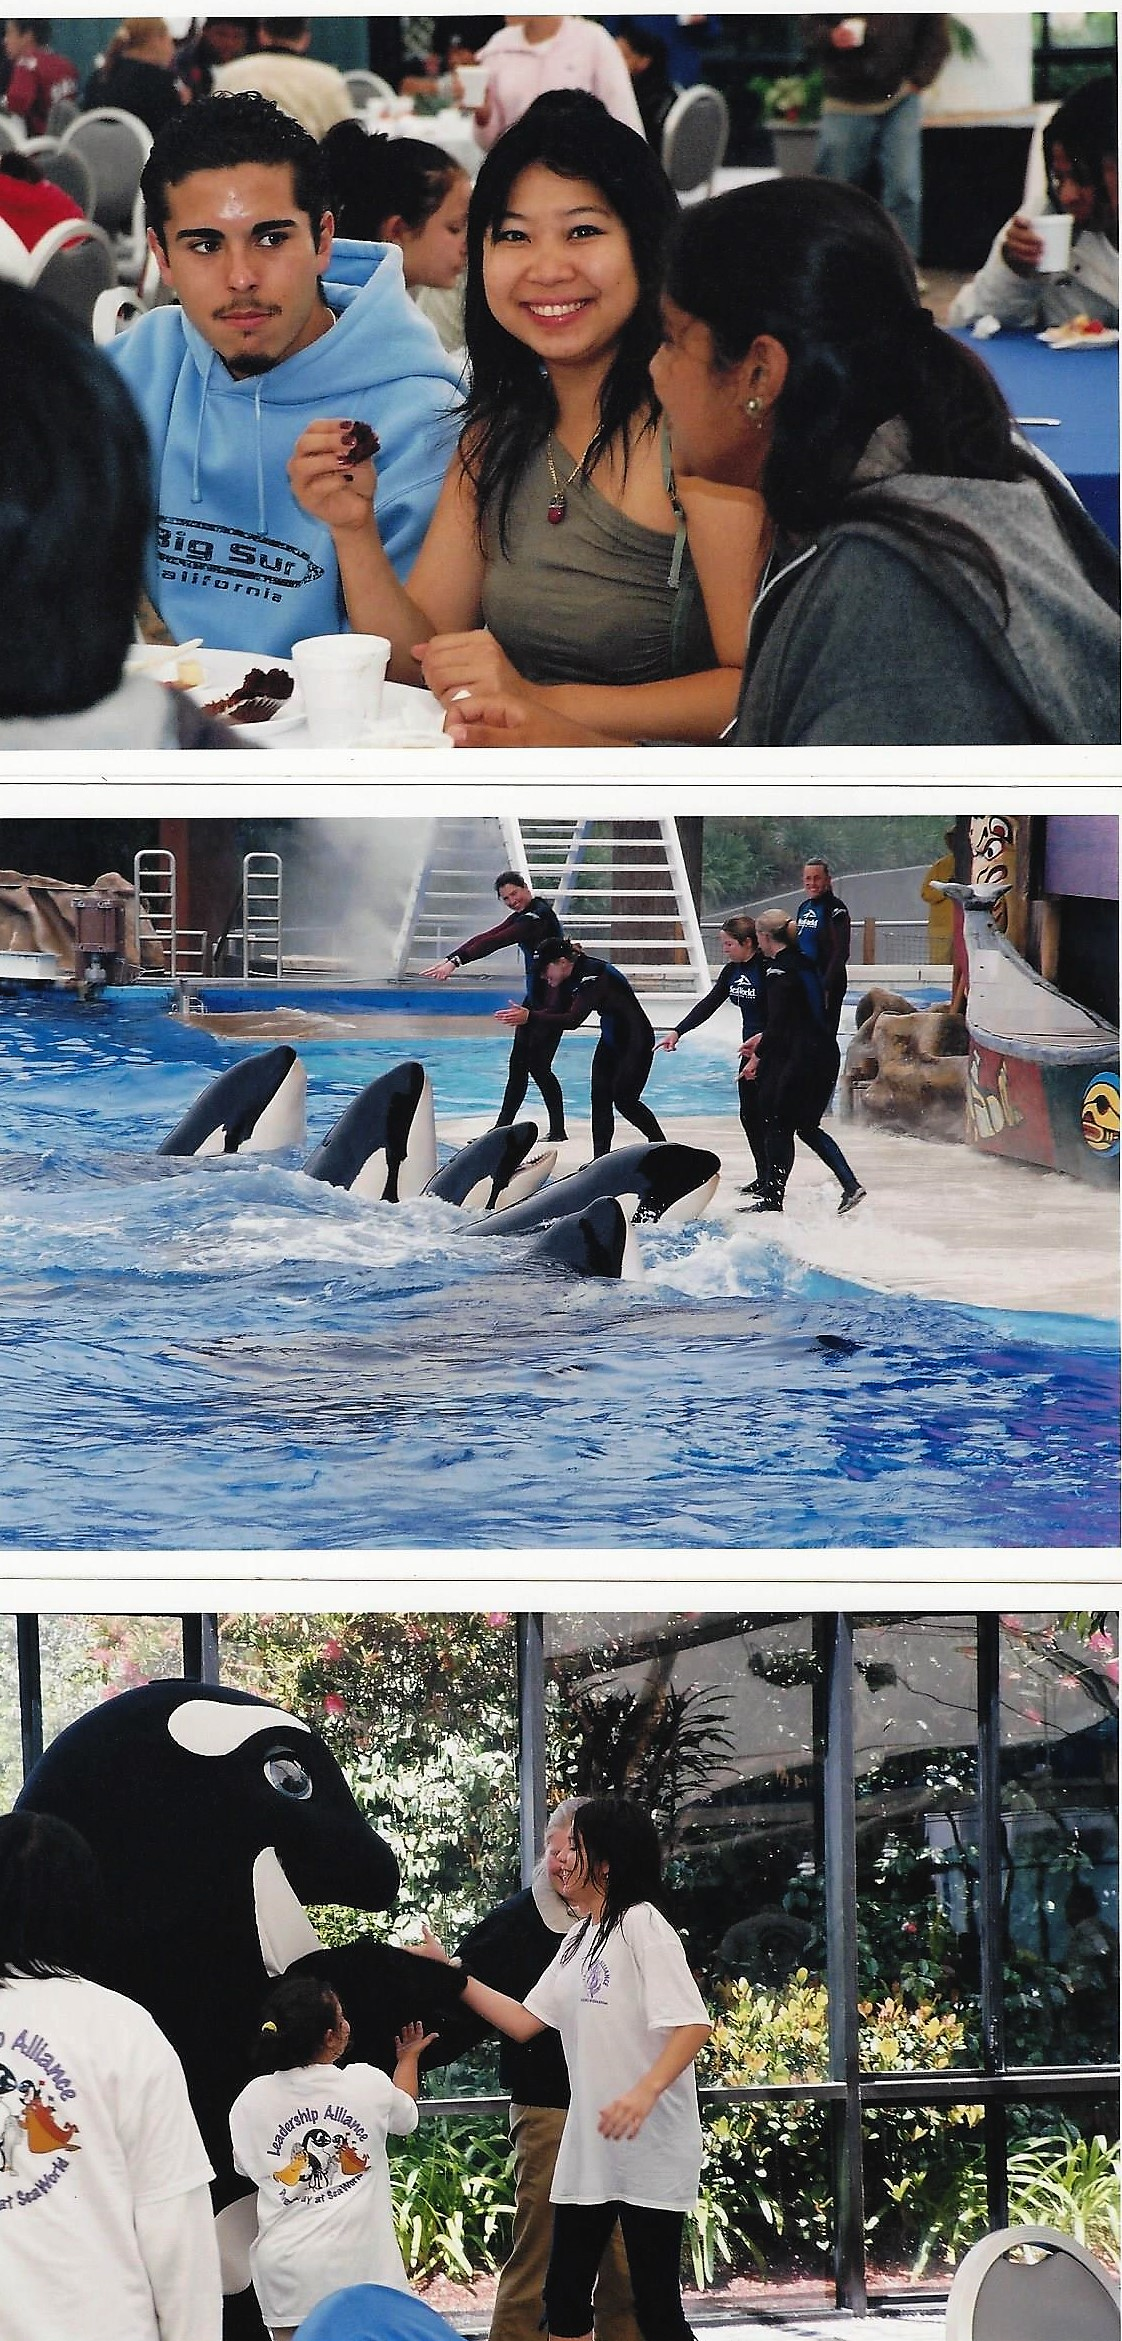 Seaworld photo #5